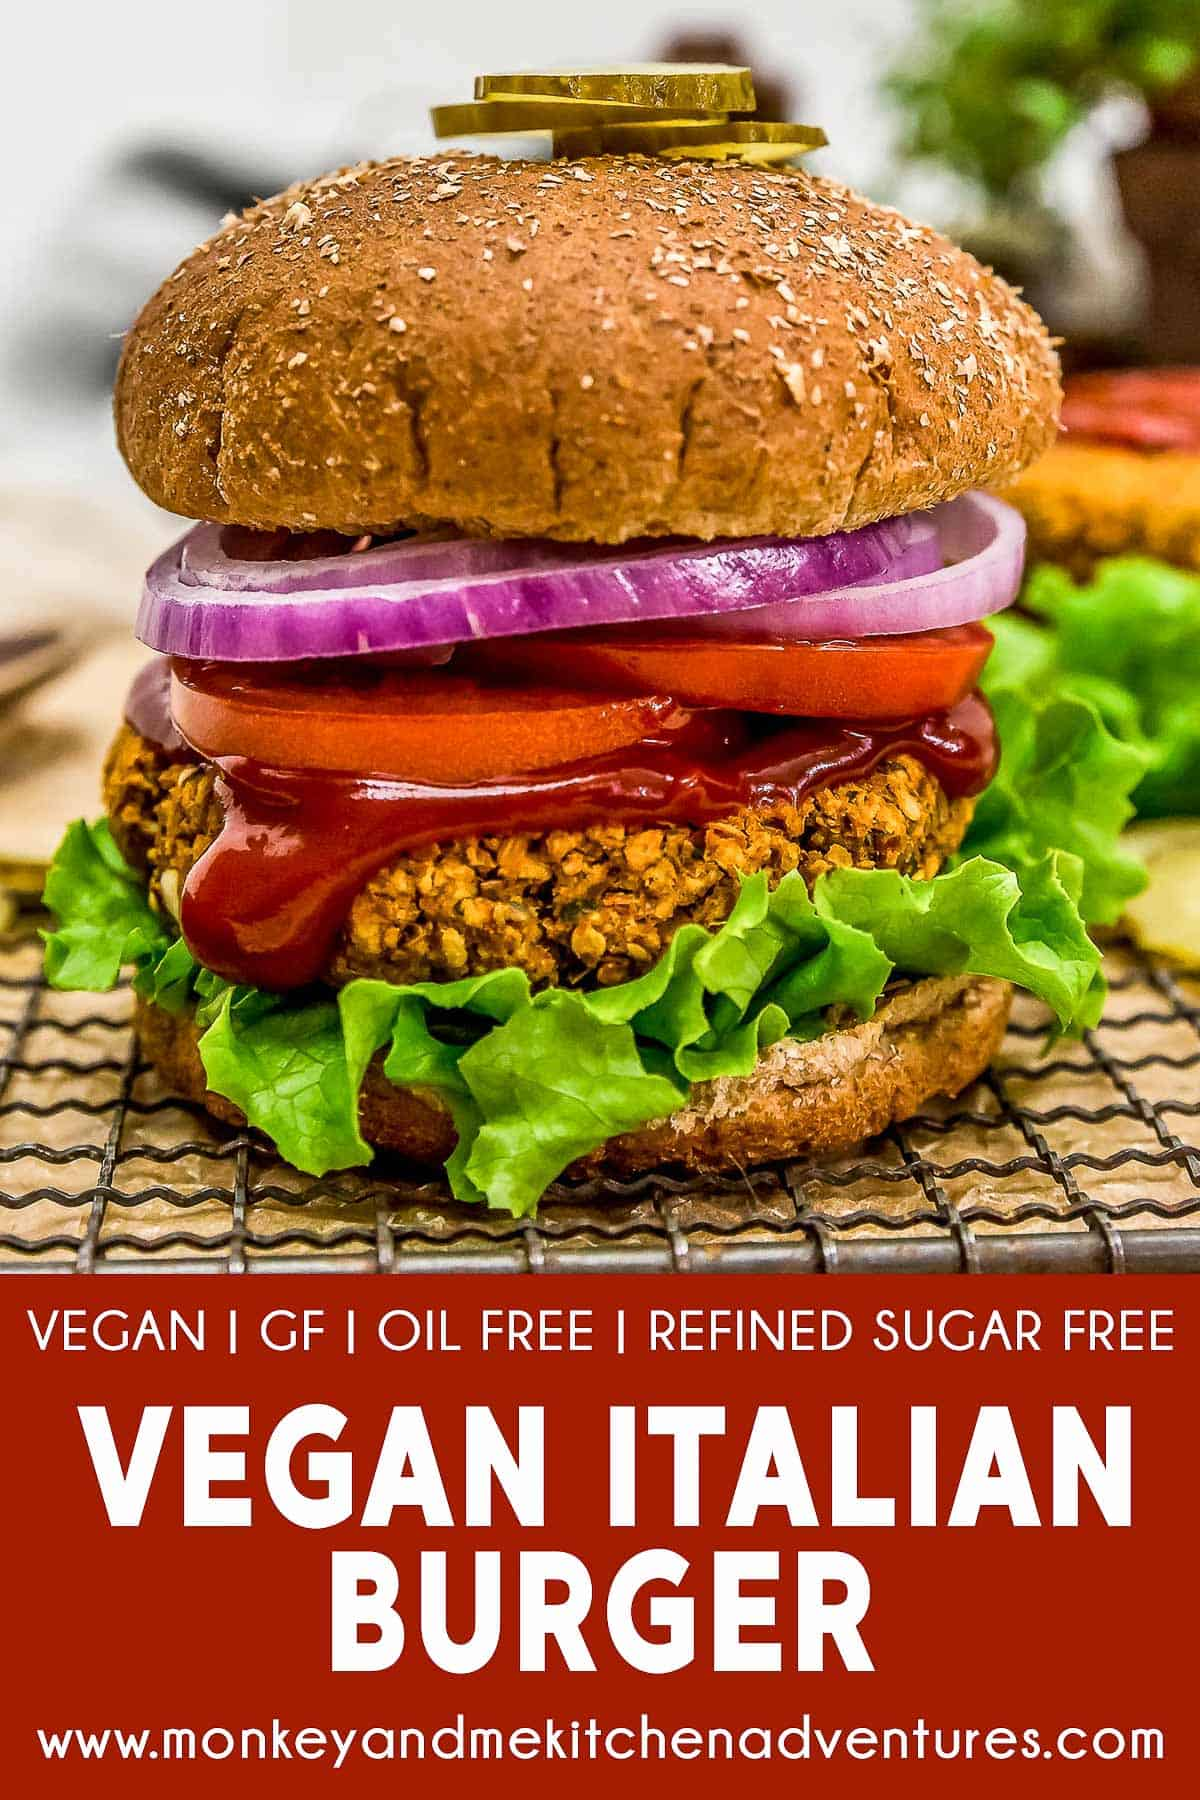 Vegan Italian Burger with text description